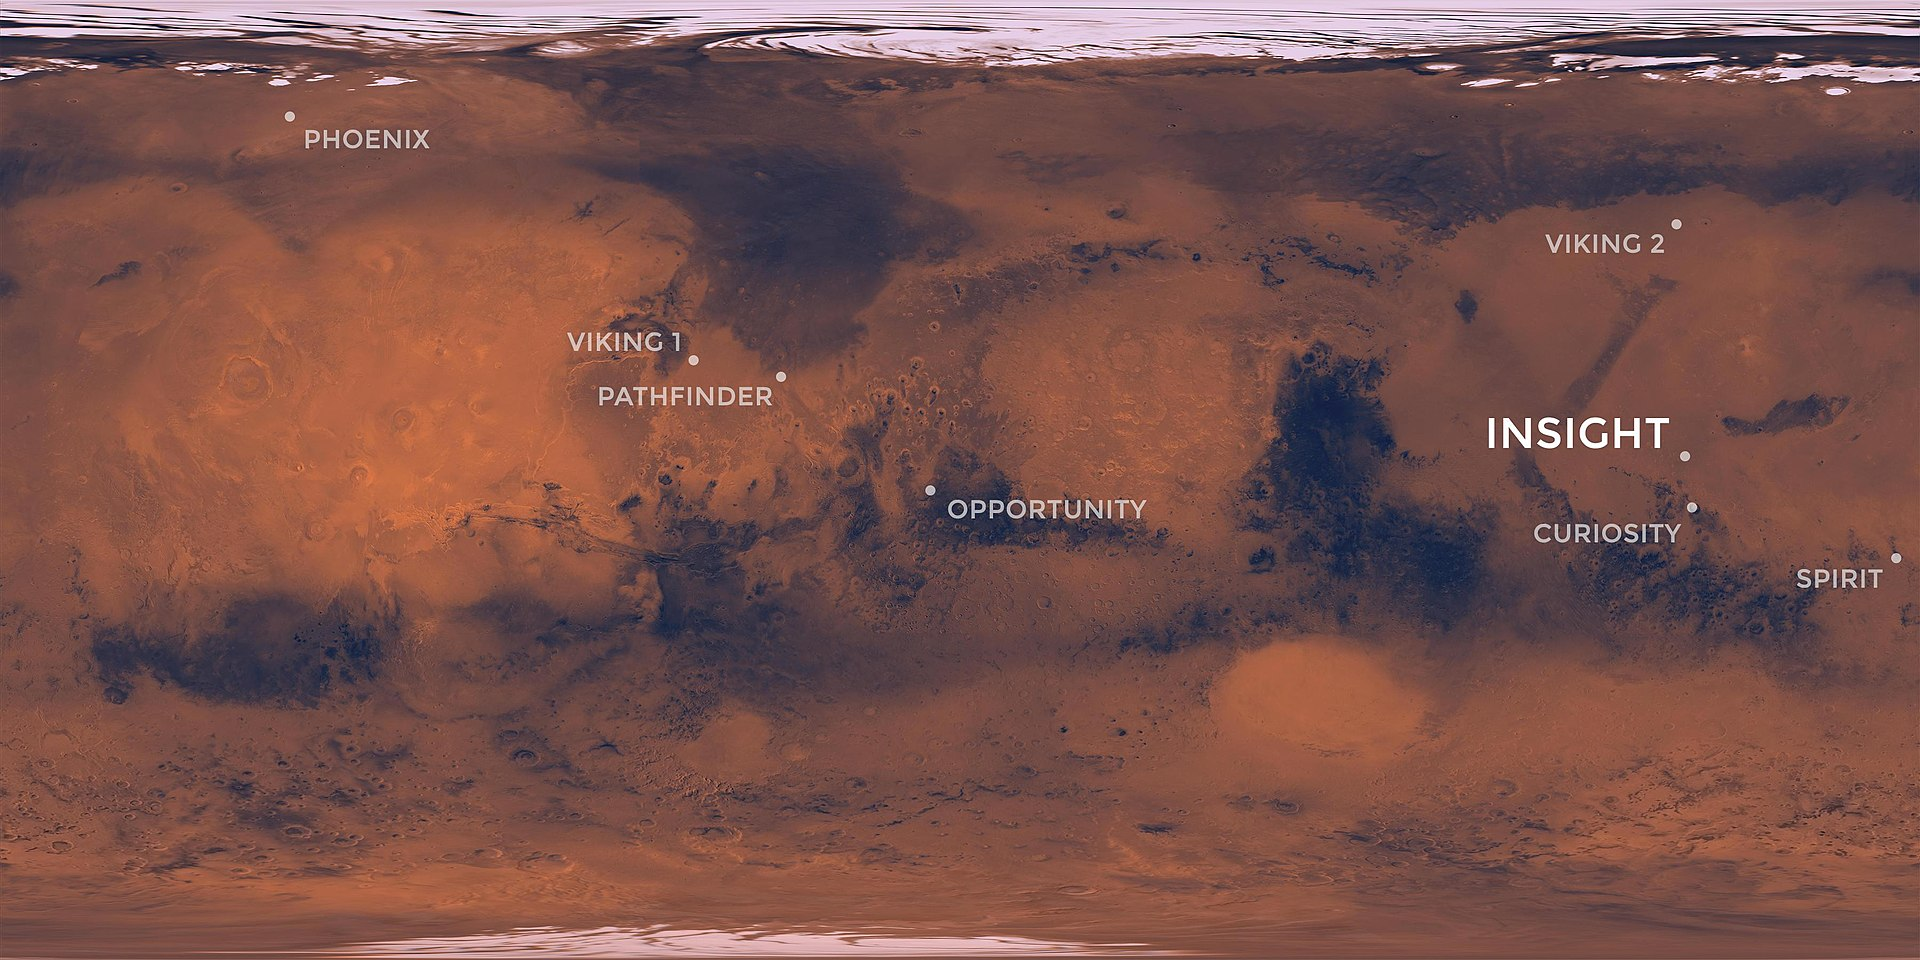 mars insight landing coordinates - photo #11